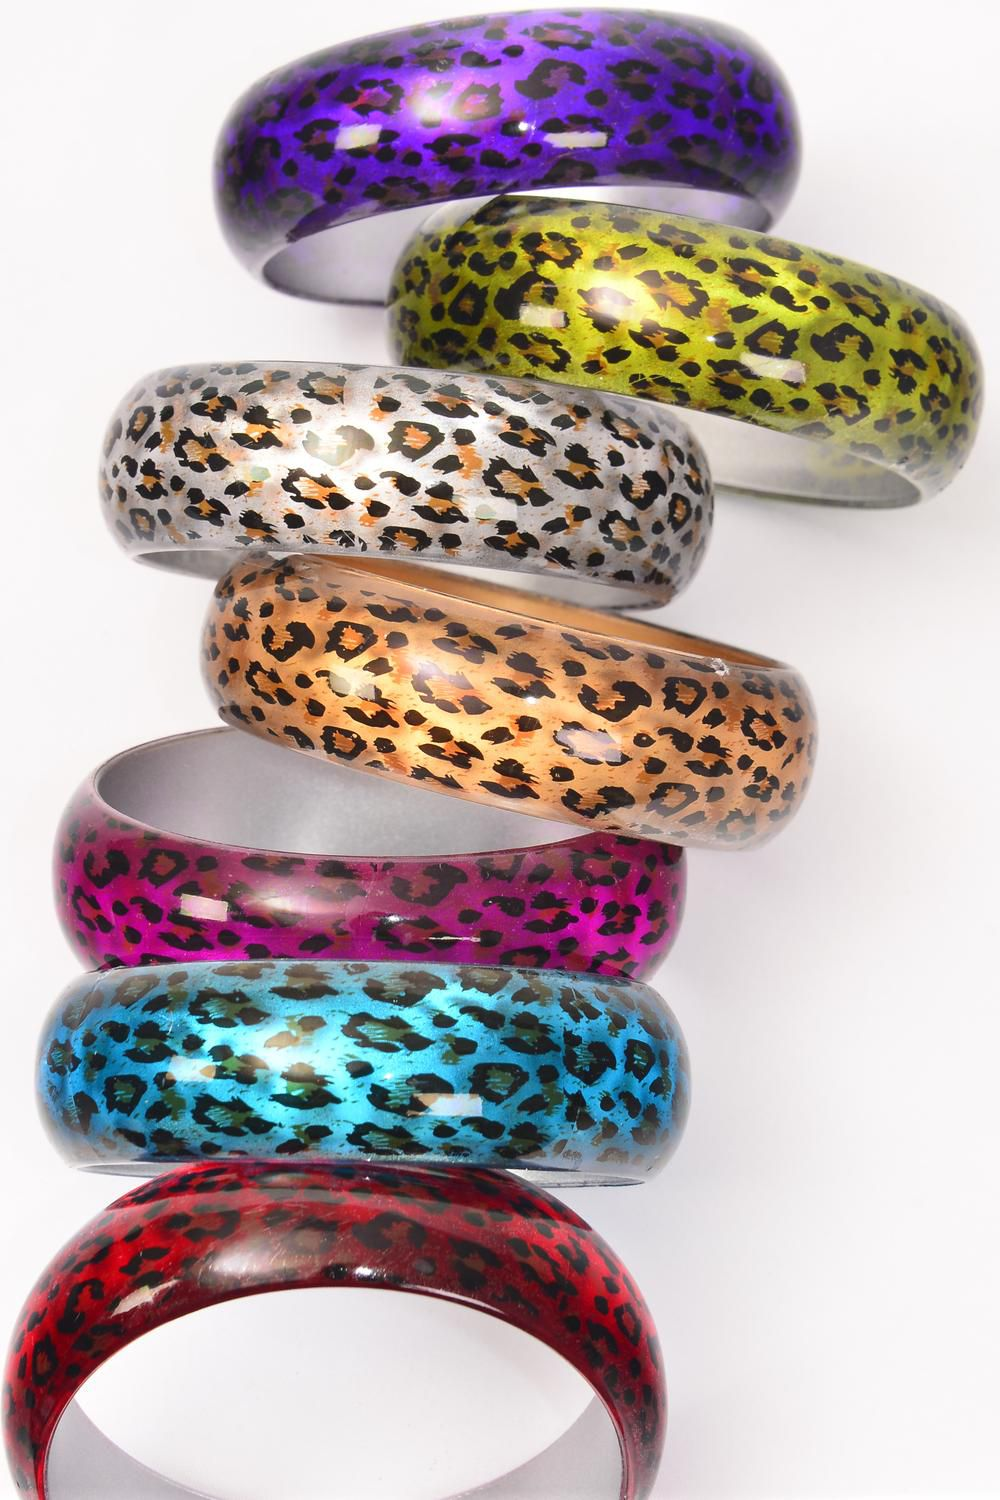 "Bangle Acrylic Cat-eye With Leopard Print/DZ Size-2.75""x 1"" Dia Wide,2 Gold,2 Silver,2 Fuchsia,2 Purple,2 Red,1 Blue,1 Lime,7 Color mix,Hang tag & Opp bag & UPC Code-"